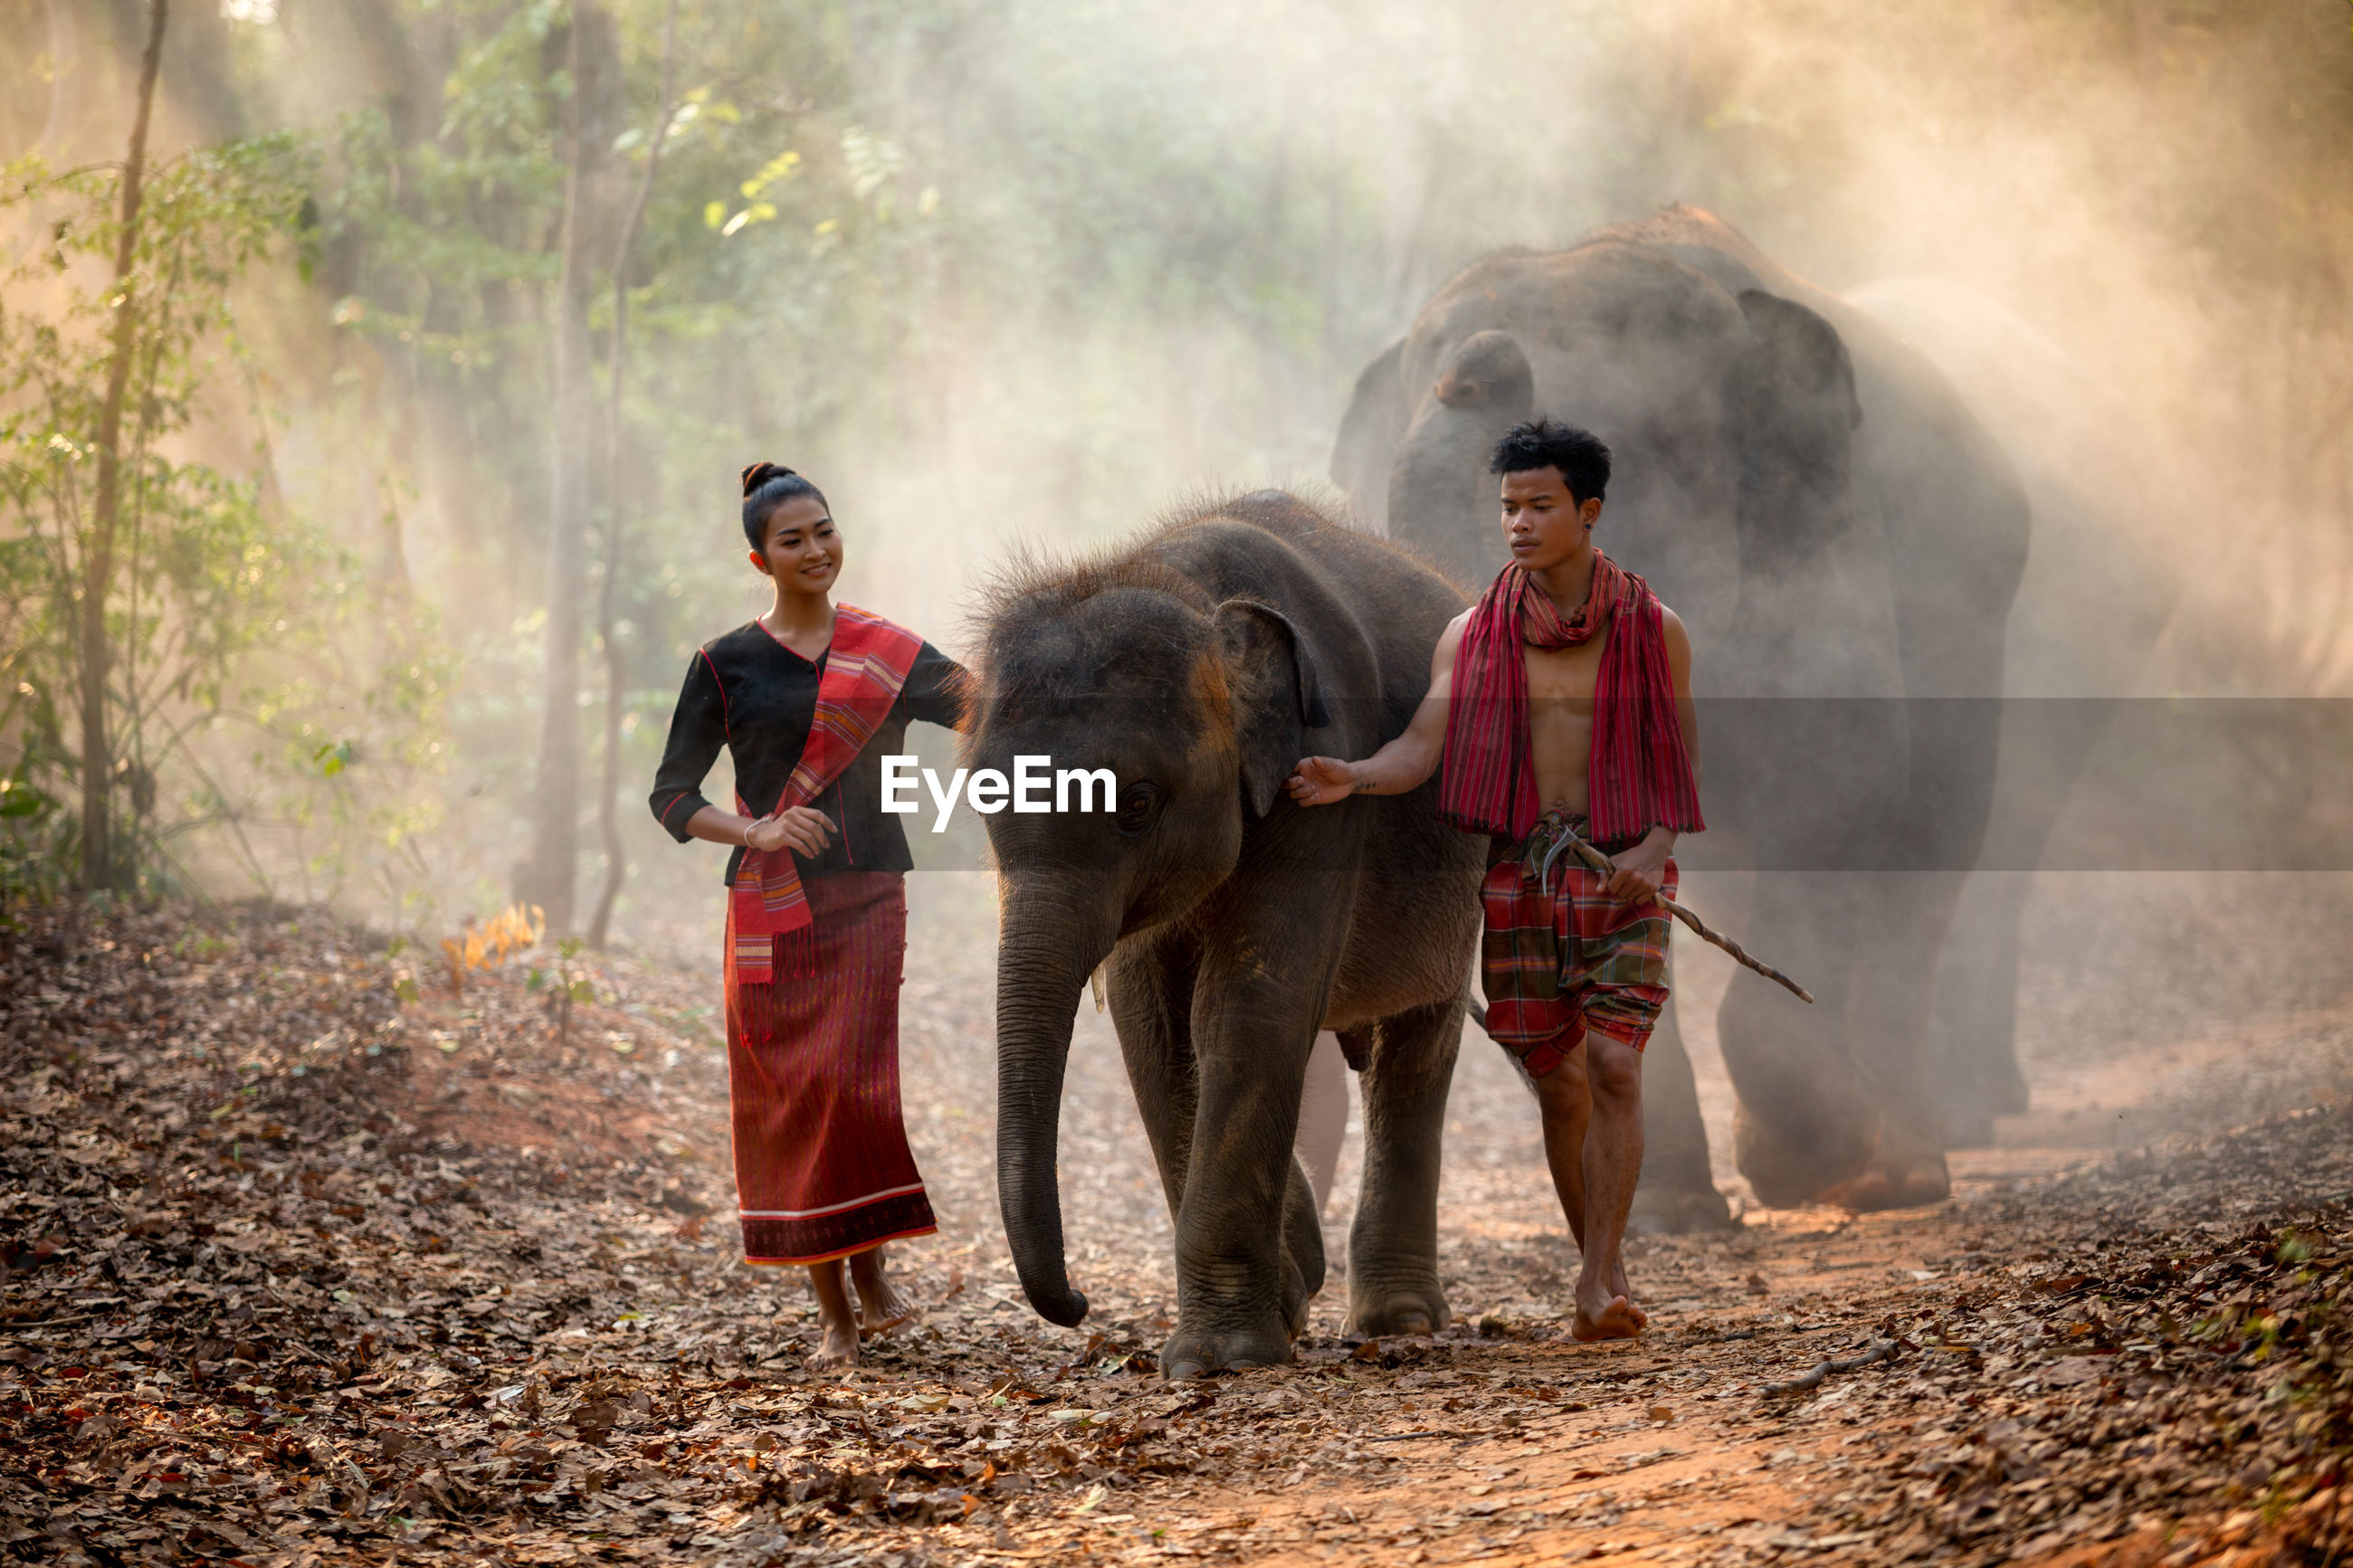 People with elephants walking in forest